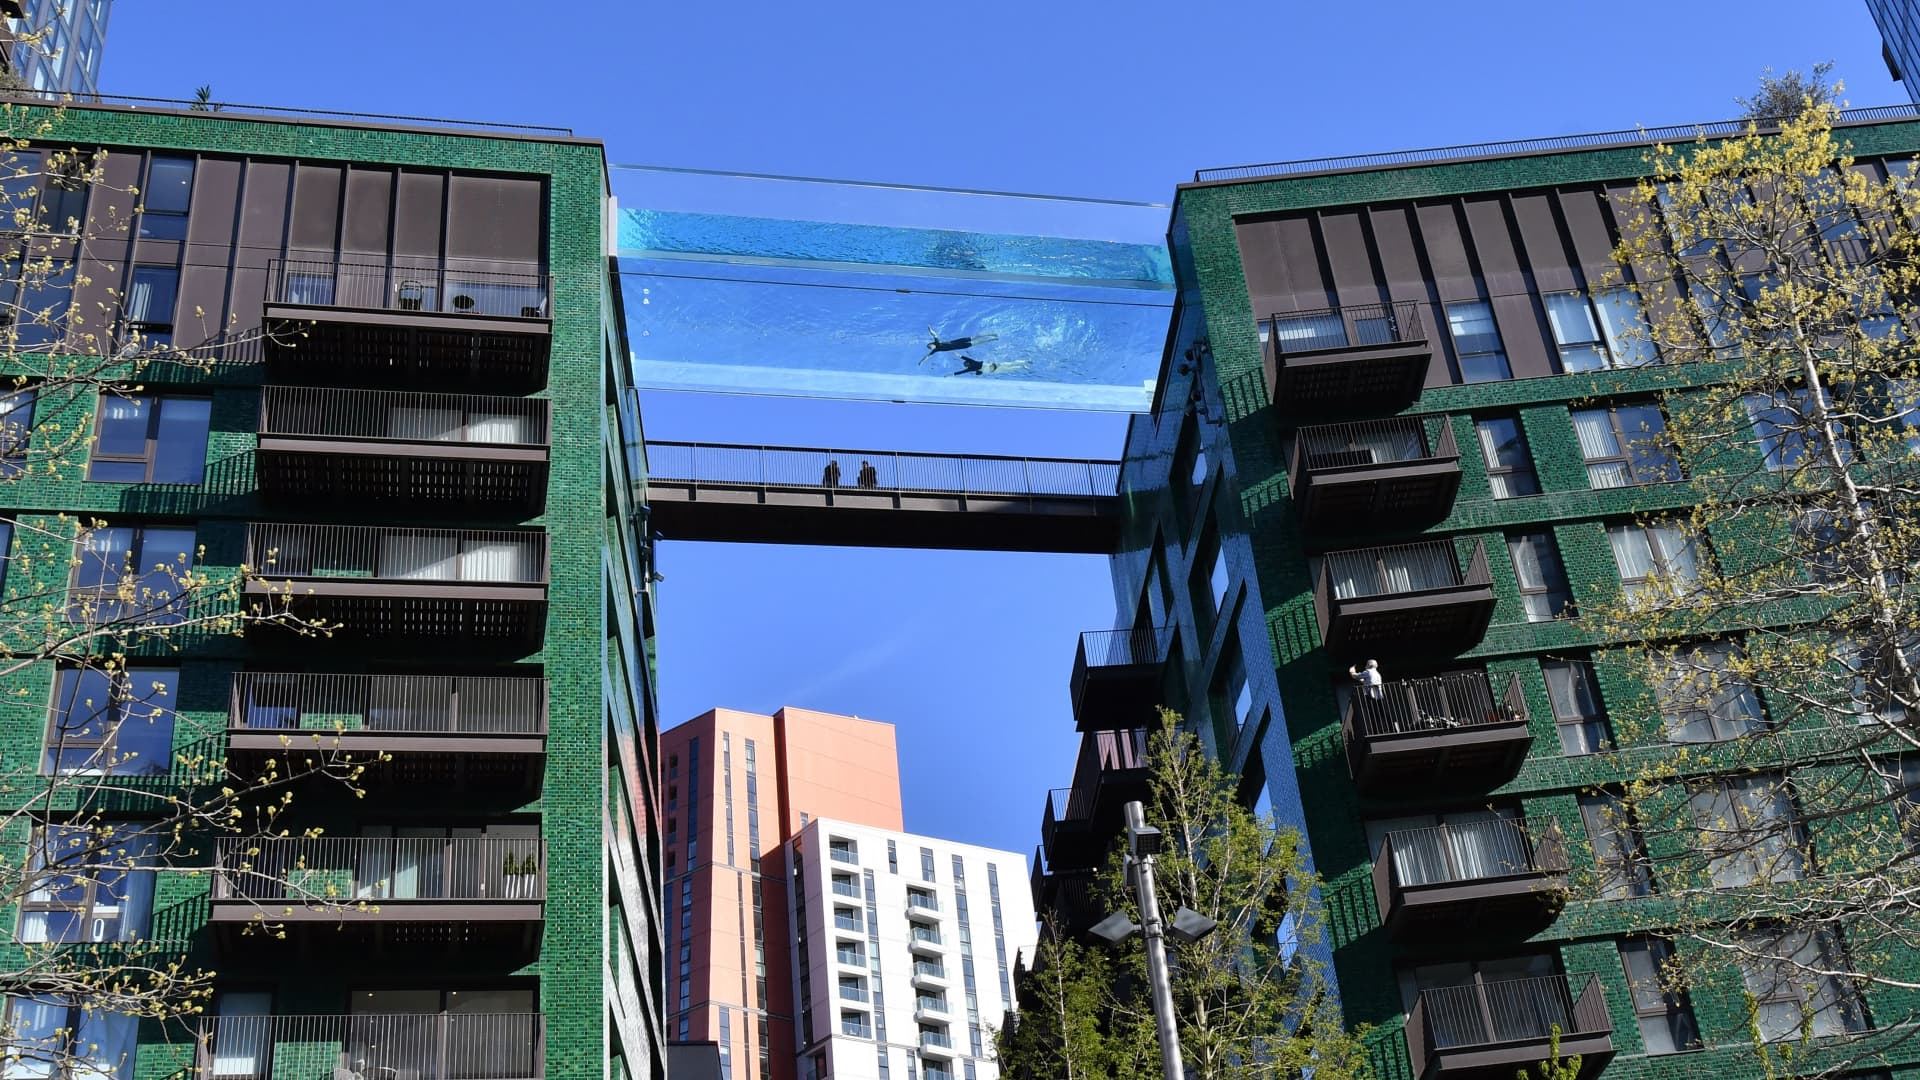 Models swim in a transparent acrylic swimming pool bridge that is fixed between two apartment blocks at Embassy Gardens next to the new U.S. Embassy in south-west London on April 22, 2021.